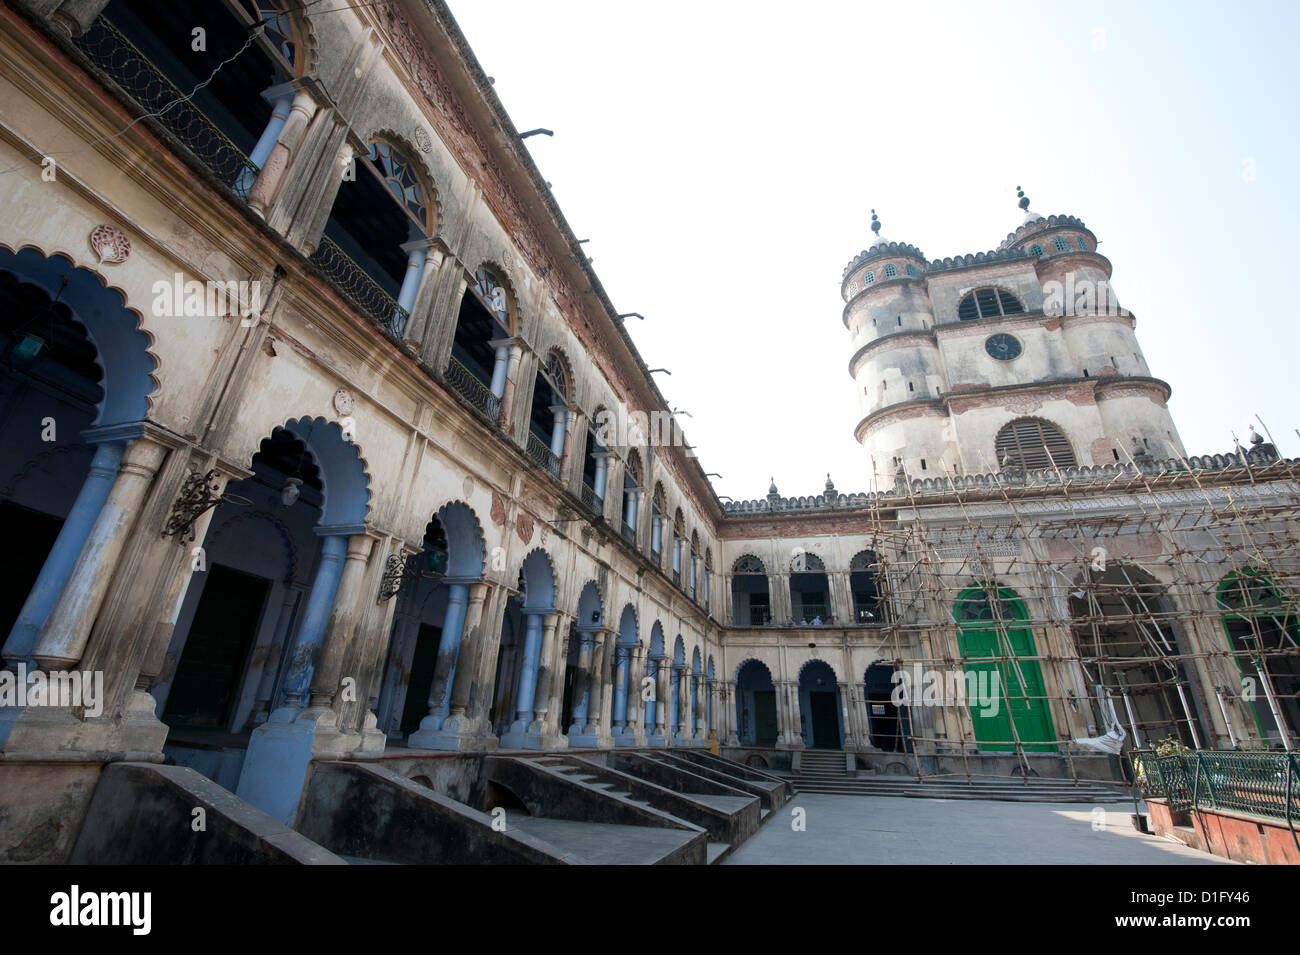 Arched madrasa rooms in the Hugli Imambara, on the west bank of the Hugli river, West Bengal, India, Asia - Stock Image